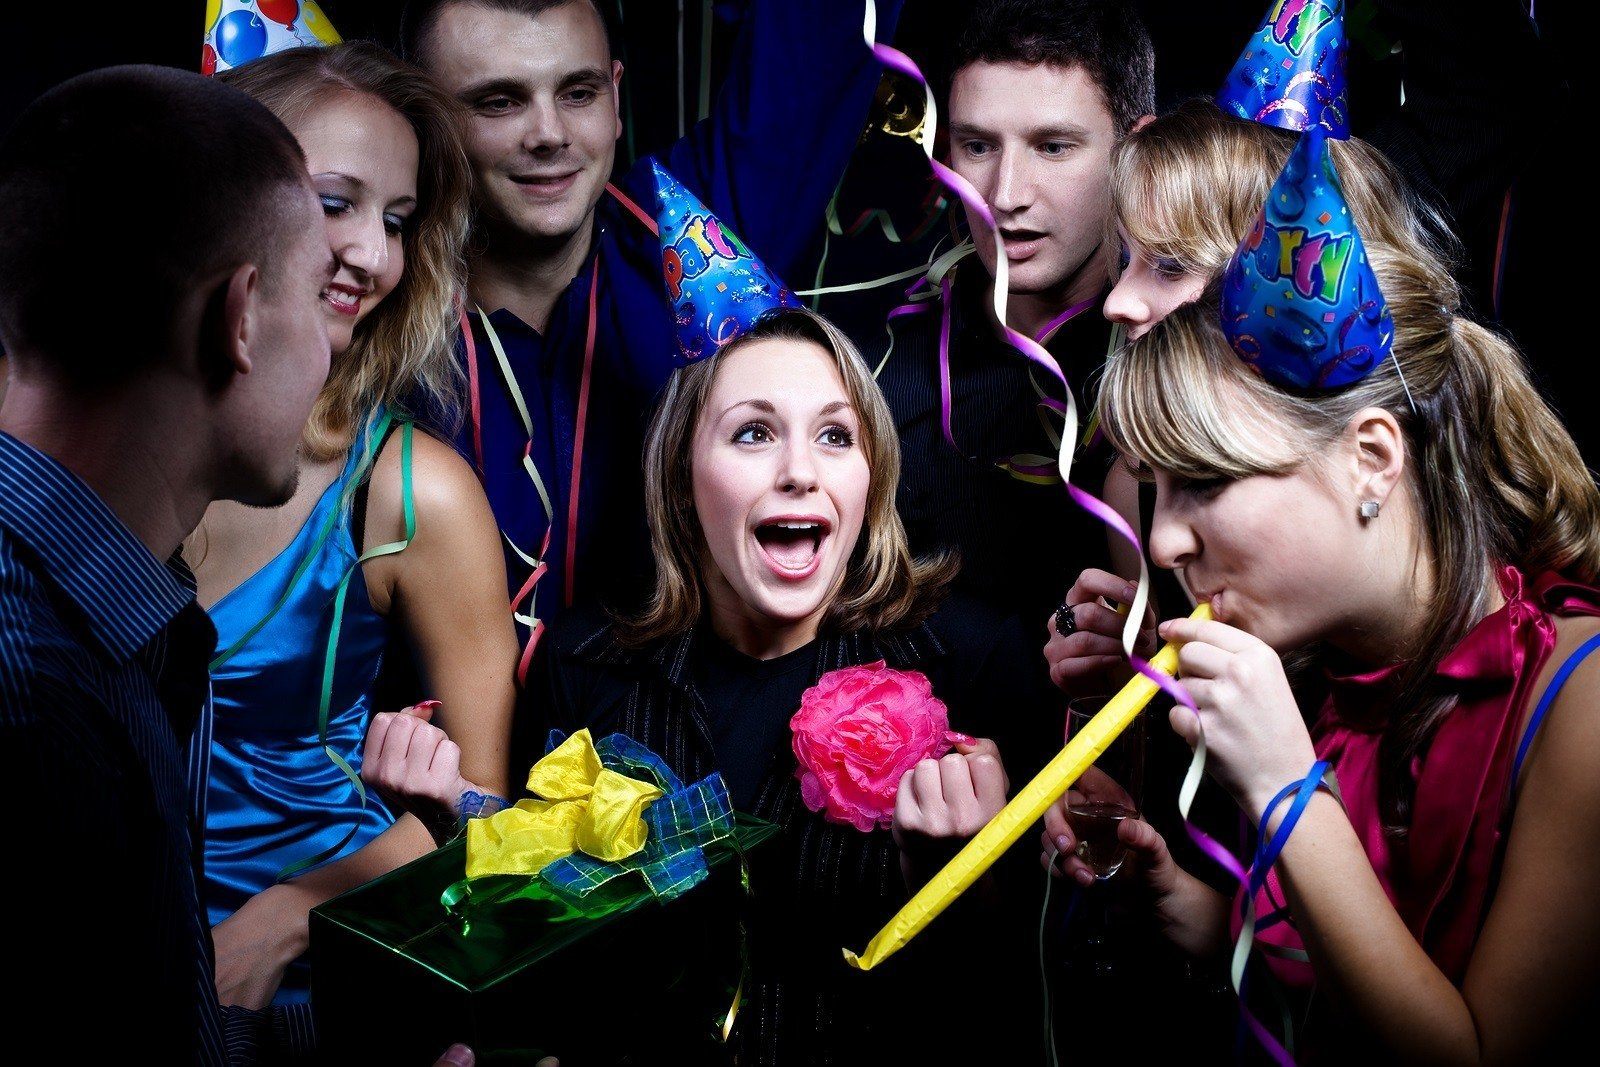 More 21st birthday party ideas for her